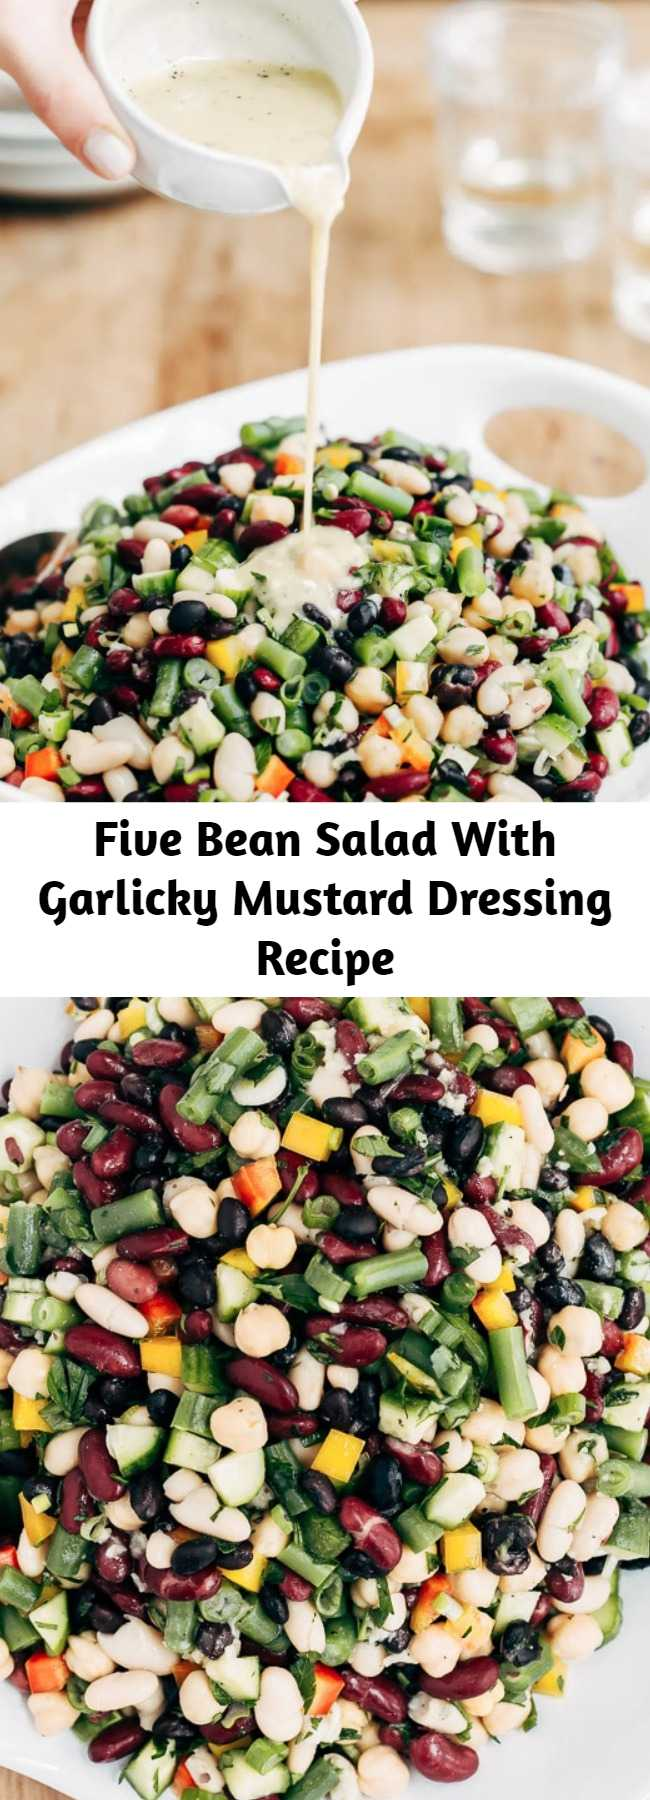 Five Bean Salad With Garlicky Mustard Dressing Recipe - Whether you make it for a picnic, potluck, or a weeknight dinner at home as a side dish, this Five Bean Salad is guaranteed to impress. Flavored with homemade garlicky mustard dressing, it comes together in 20 minutes, can be made ahead, and travels well.